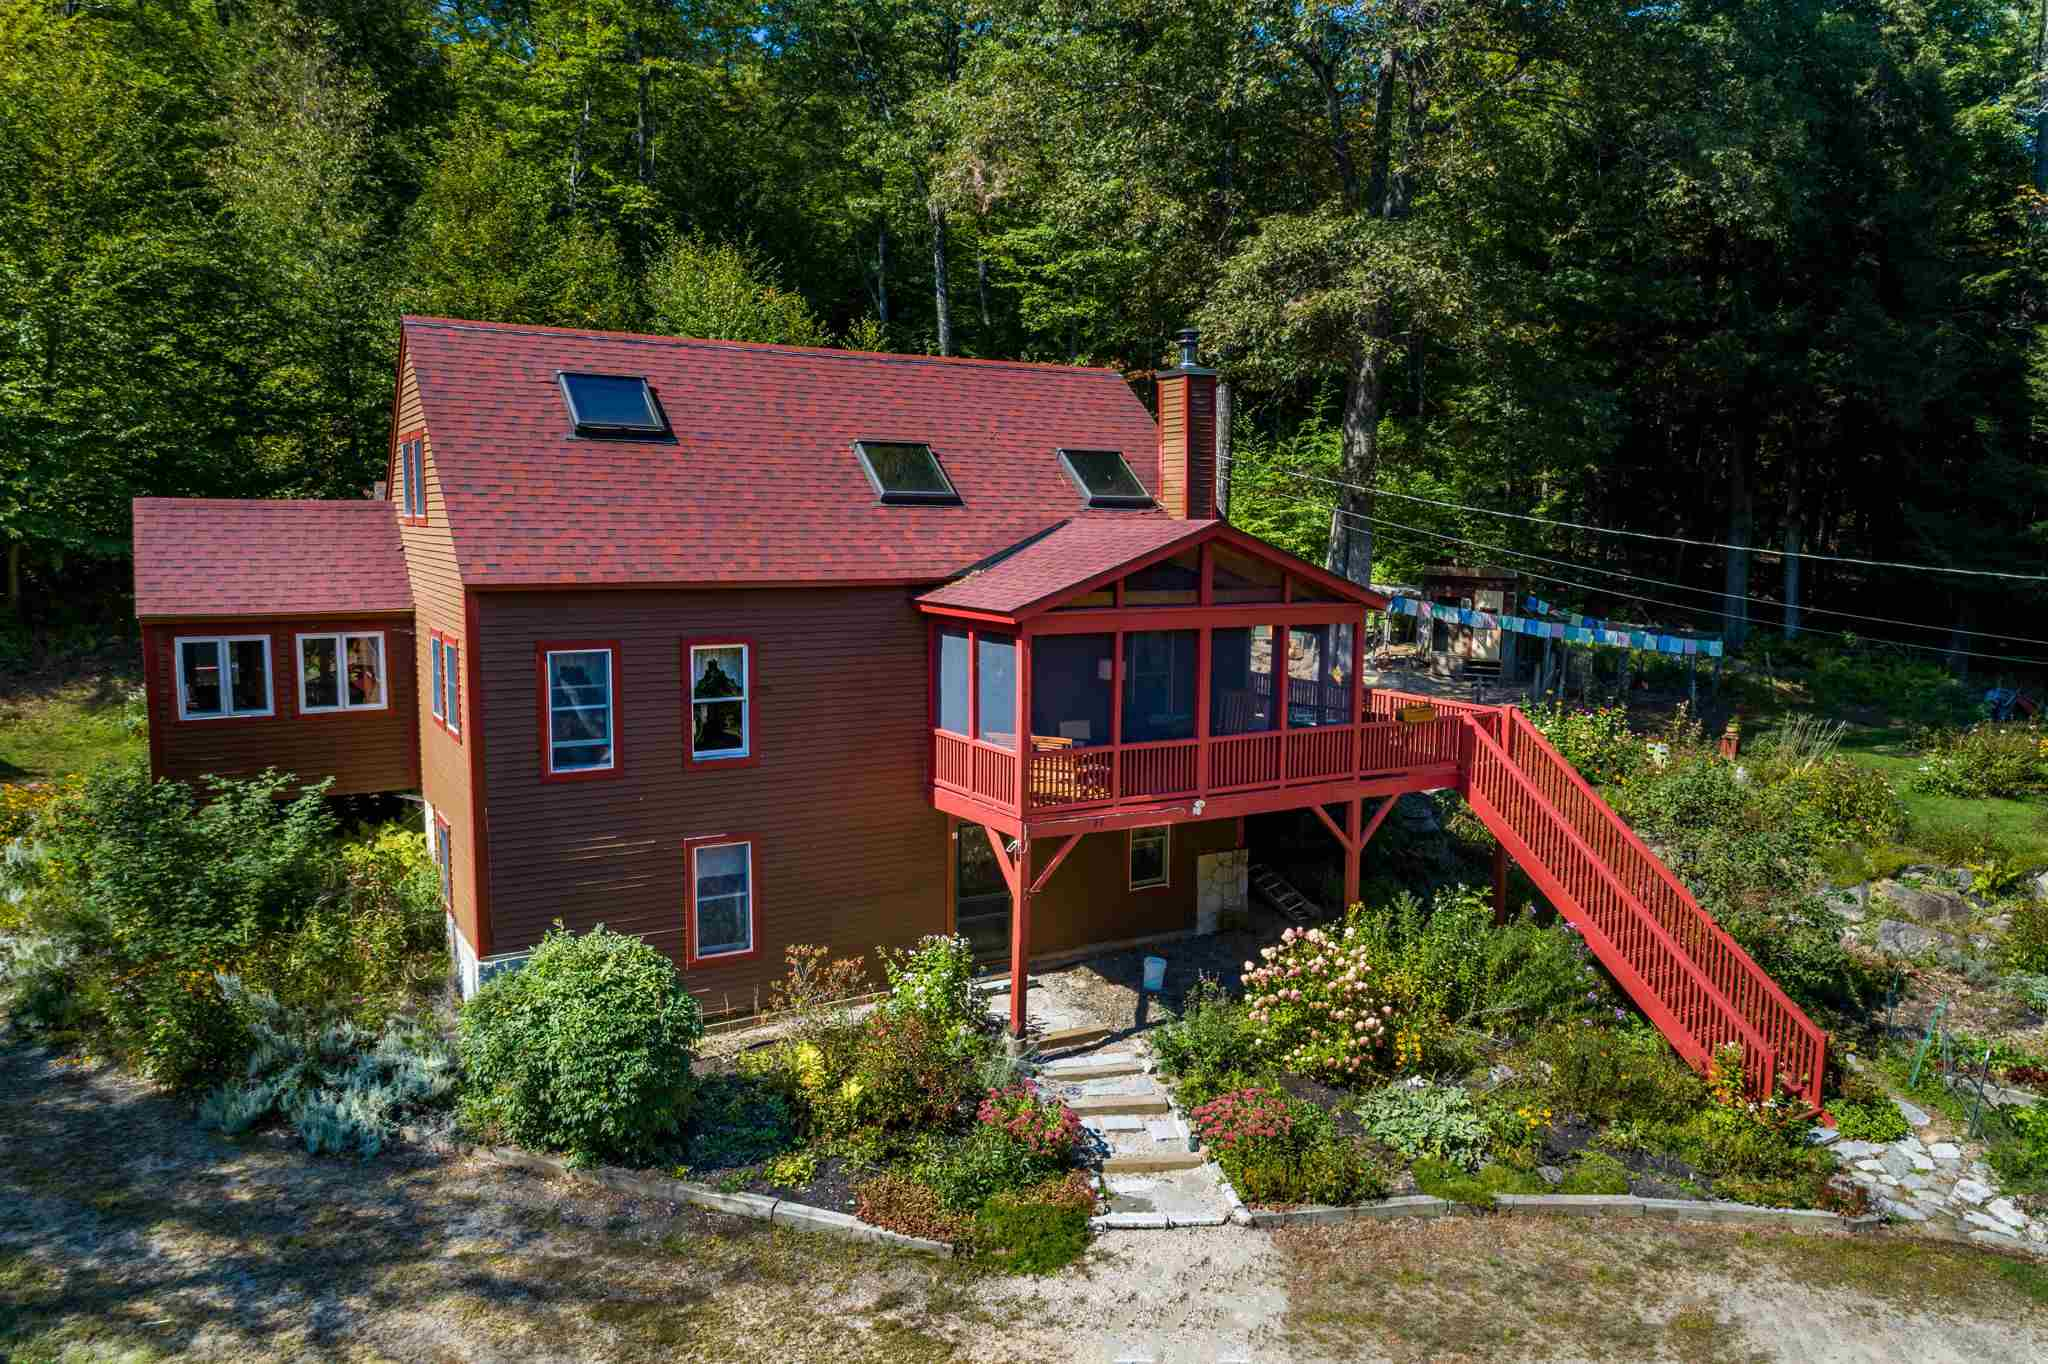 MLS 4807325: 27 Forest Pond Road, New Hampton NH